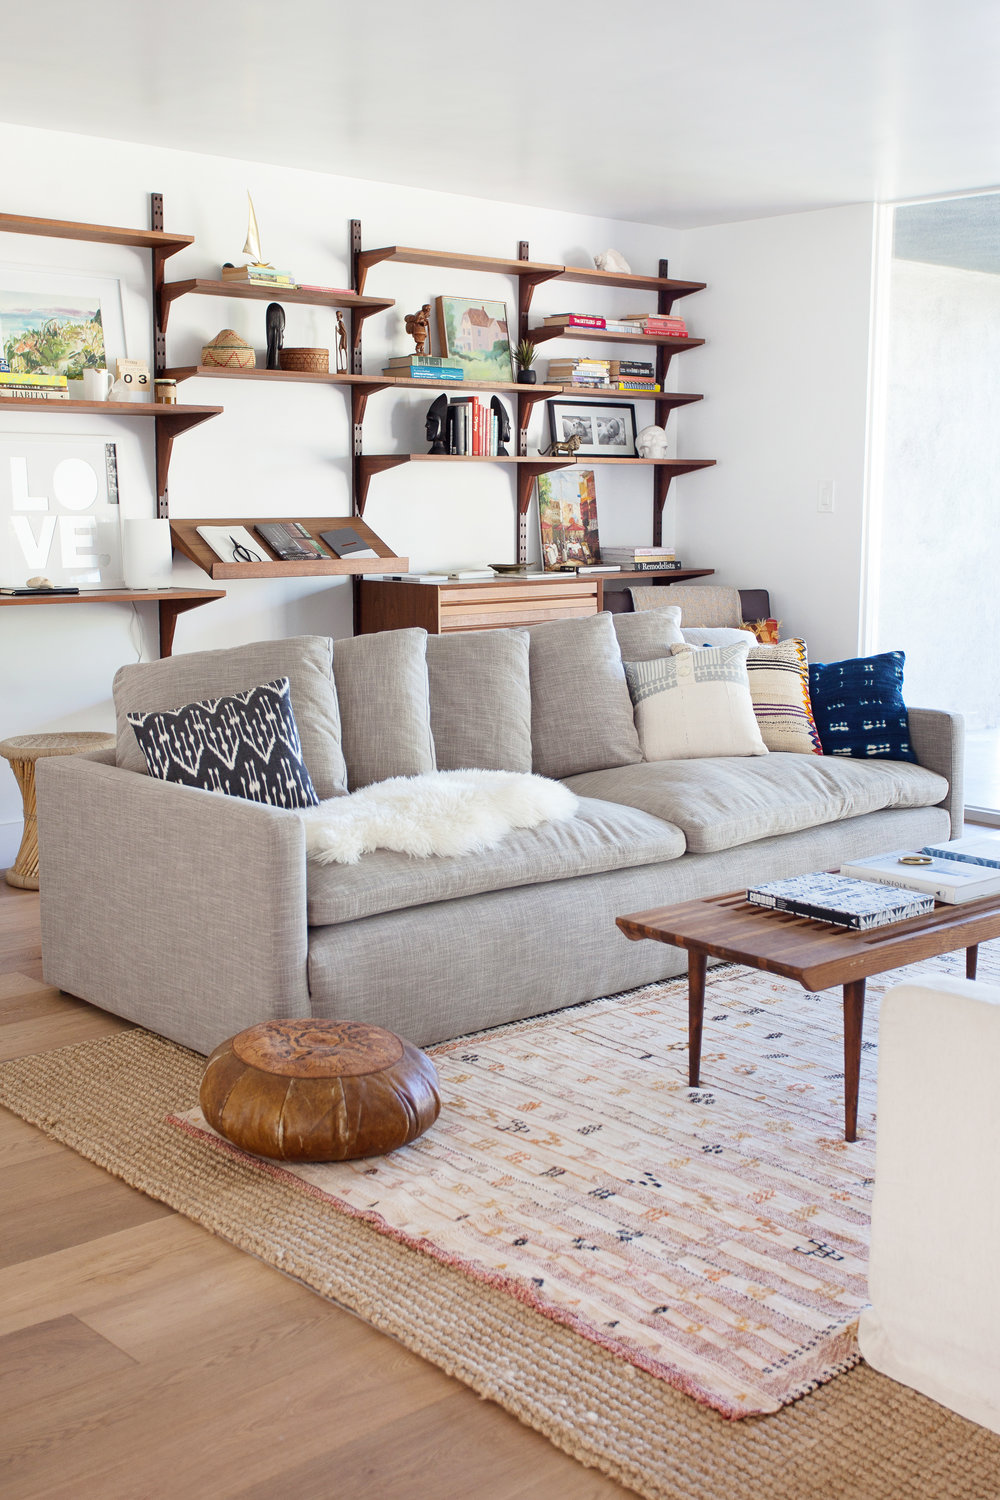 Right Before The Holidays I Got To Feathering The Nest Knowing Guests Would  Be In Town November January. First I Brought In The Retreat Sofa From West  Elm. ...